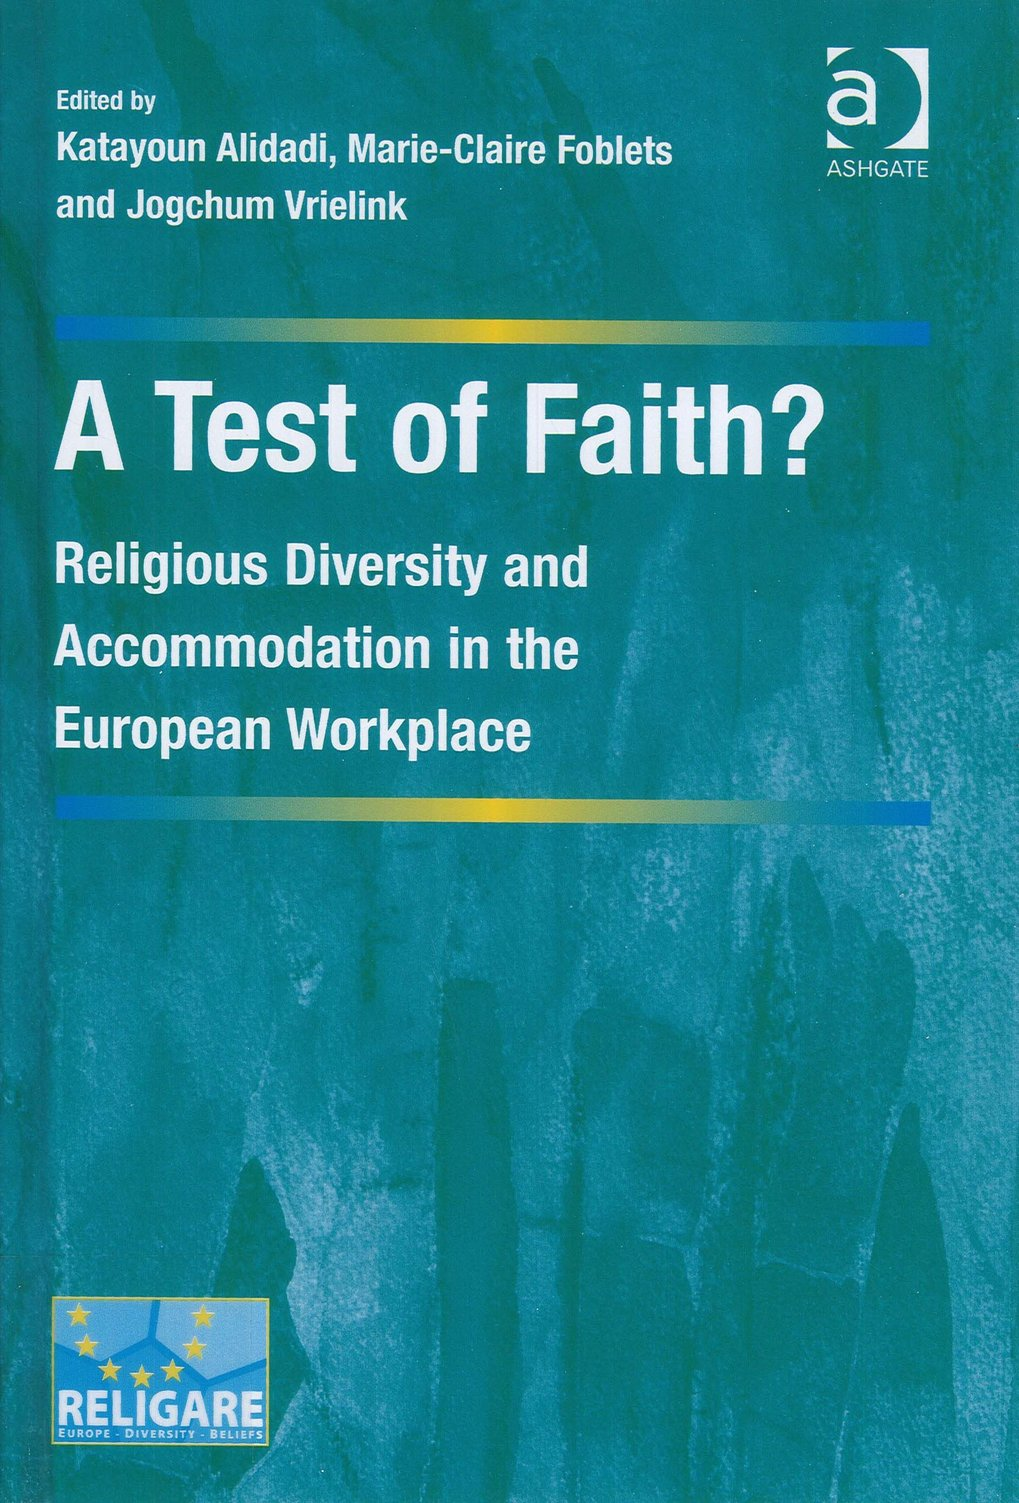 A Test of Faith? Religious diversity and accommodation in the European workplace